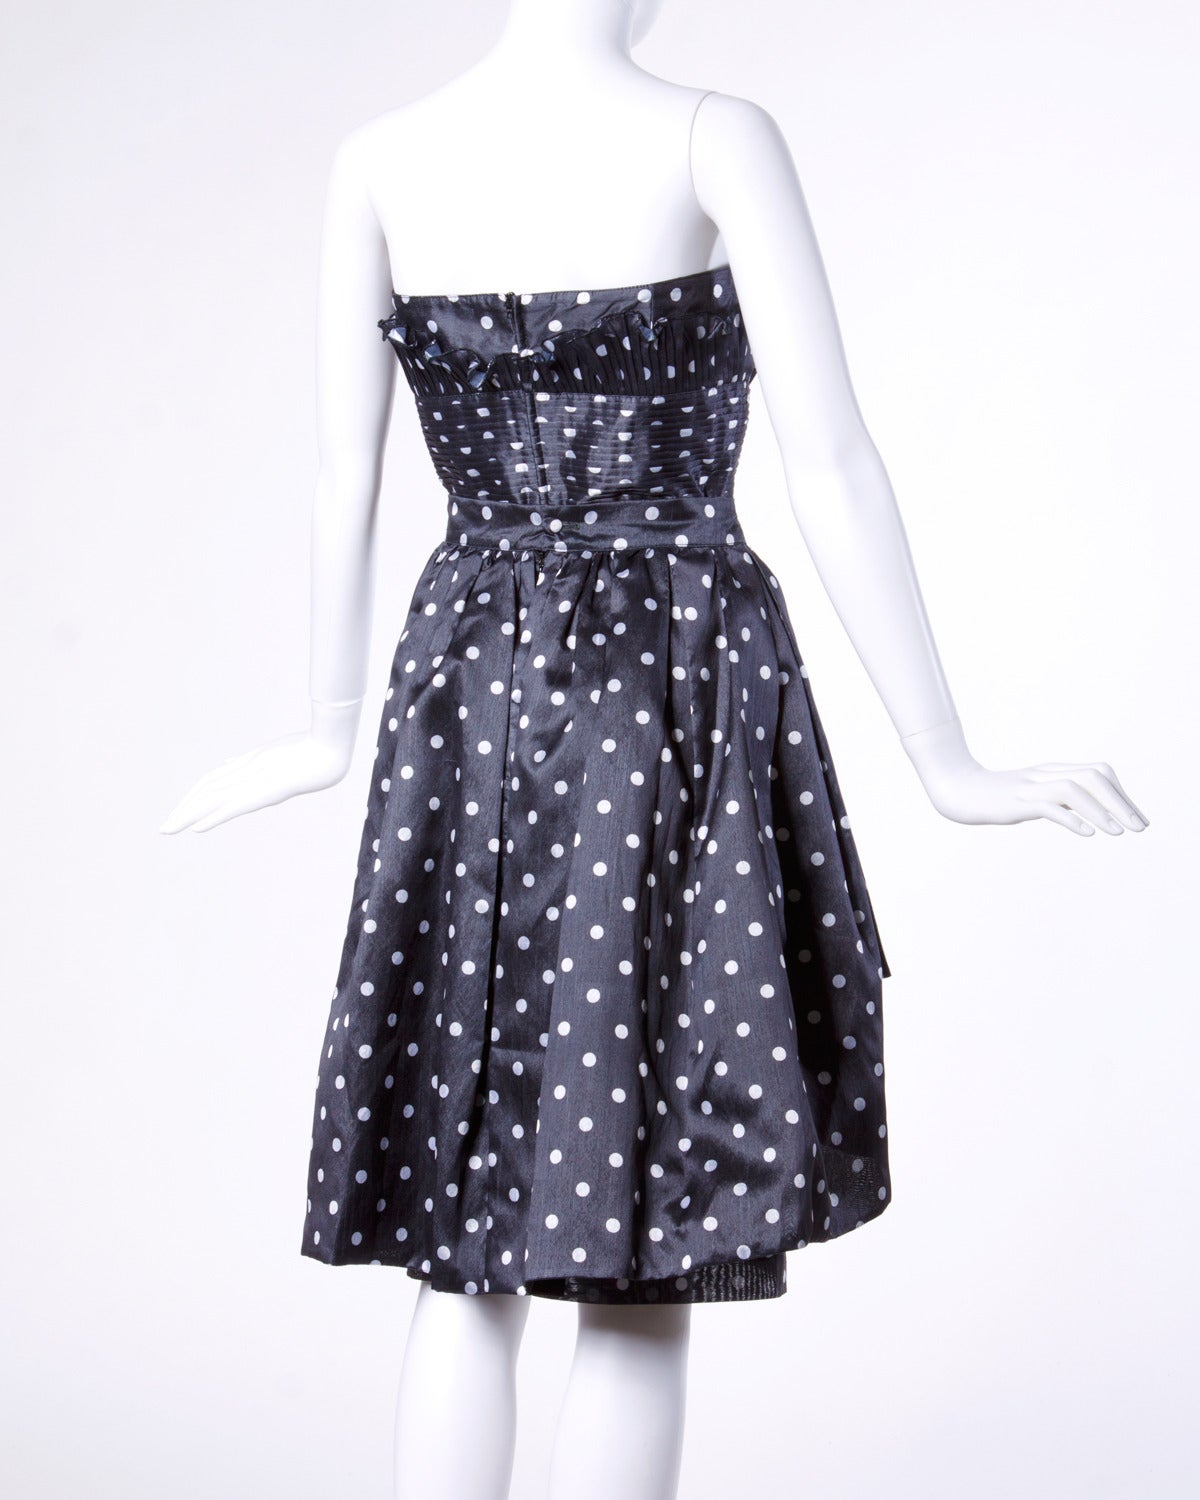 Loris Azzaro Vintage Polka Dot Bustier Top + Skirt 2-Piece Dress Ensemble For Sale 1